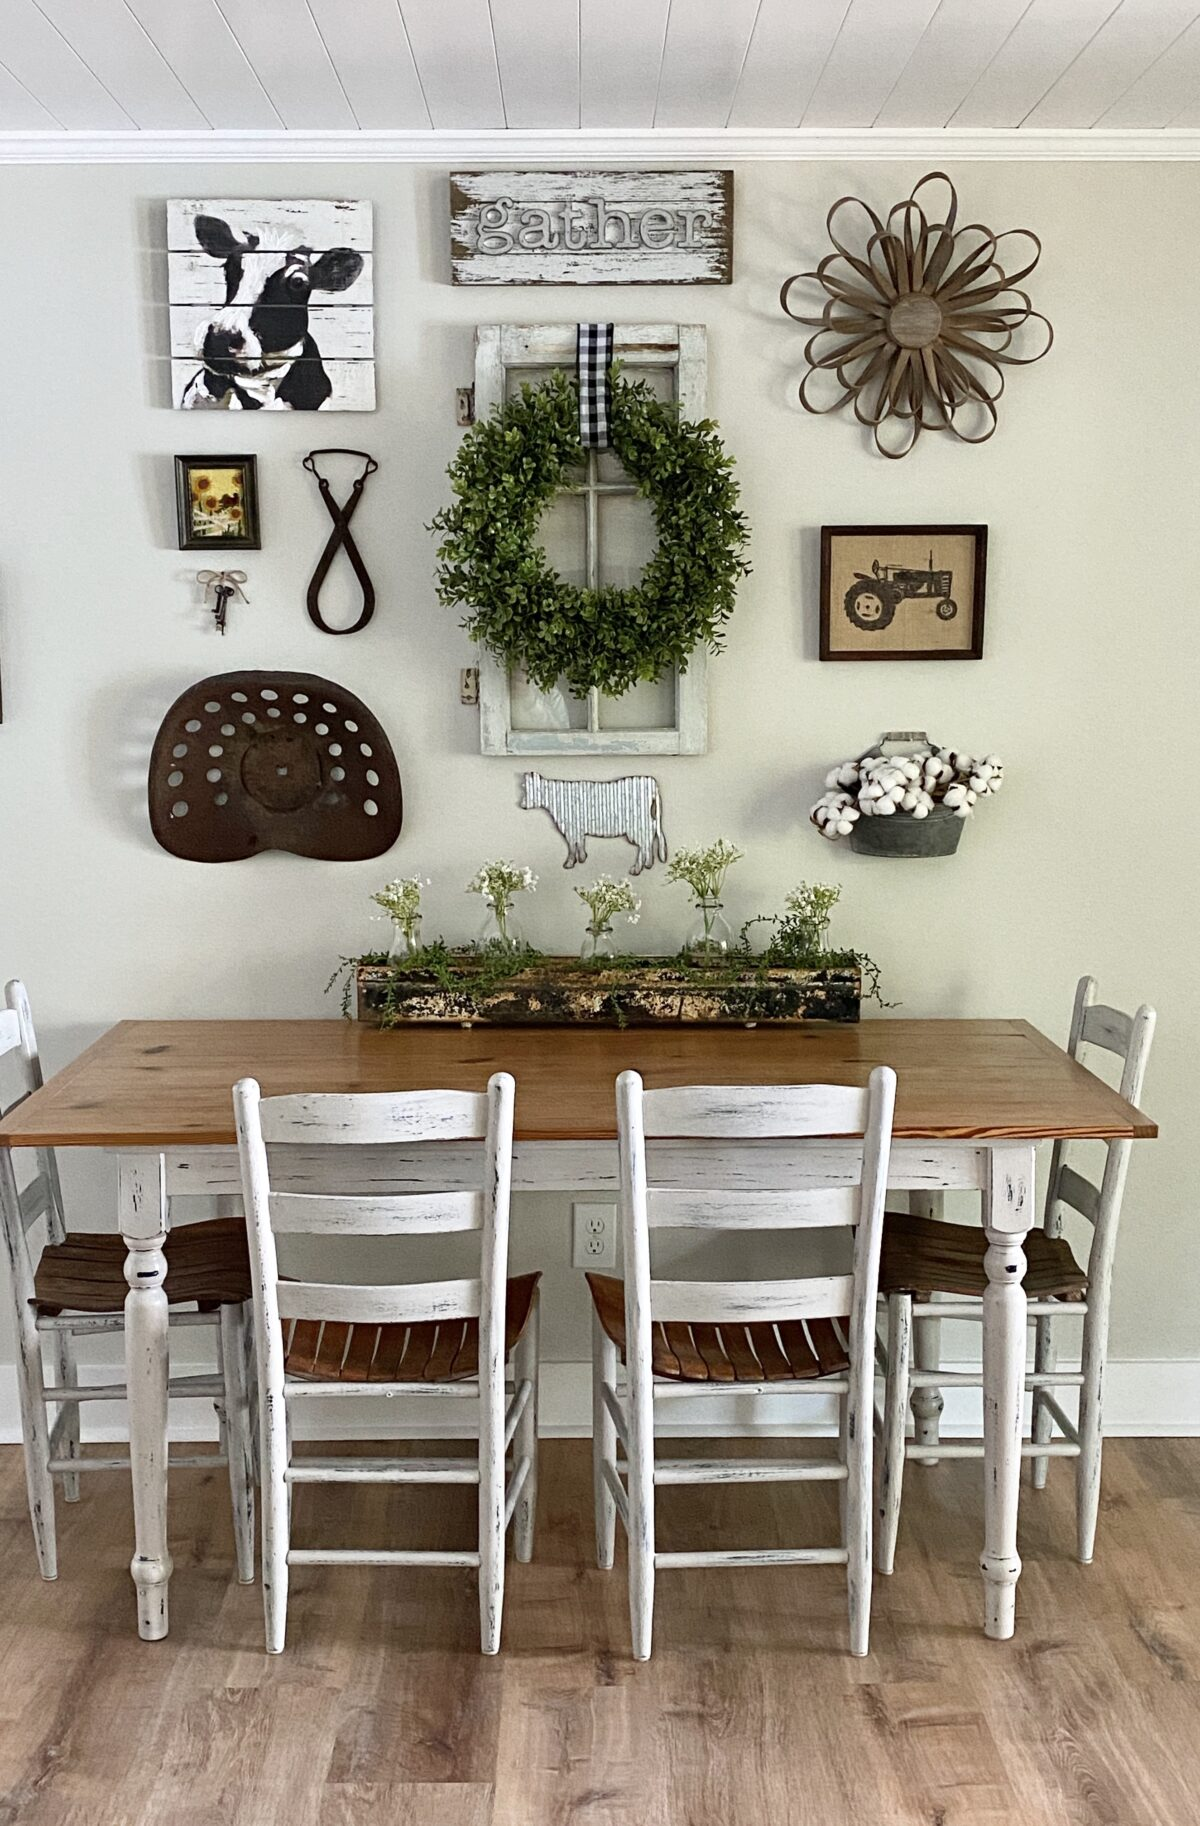 How to Create a Gallery Wall Over a Table